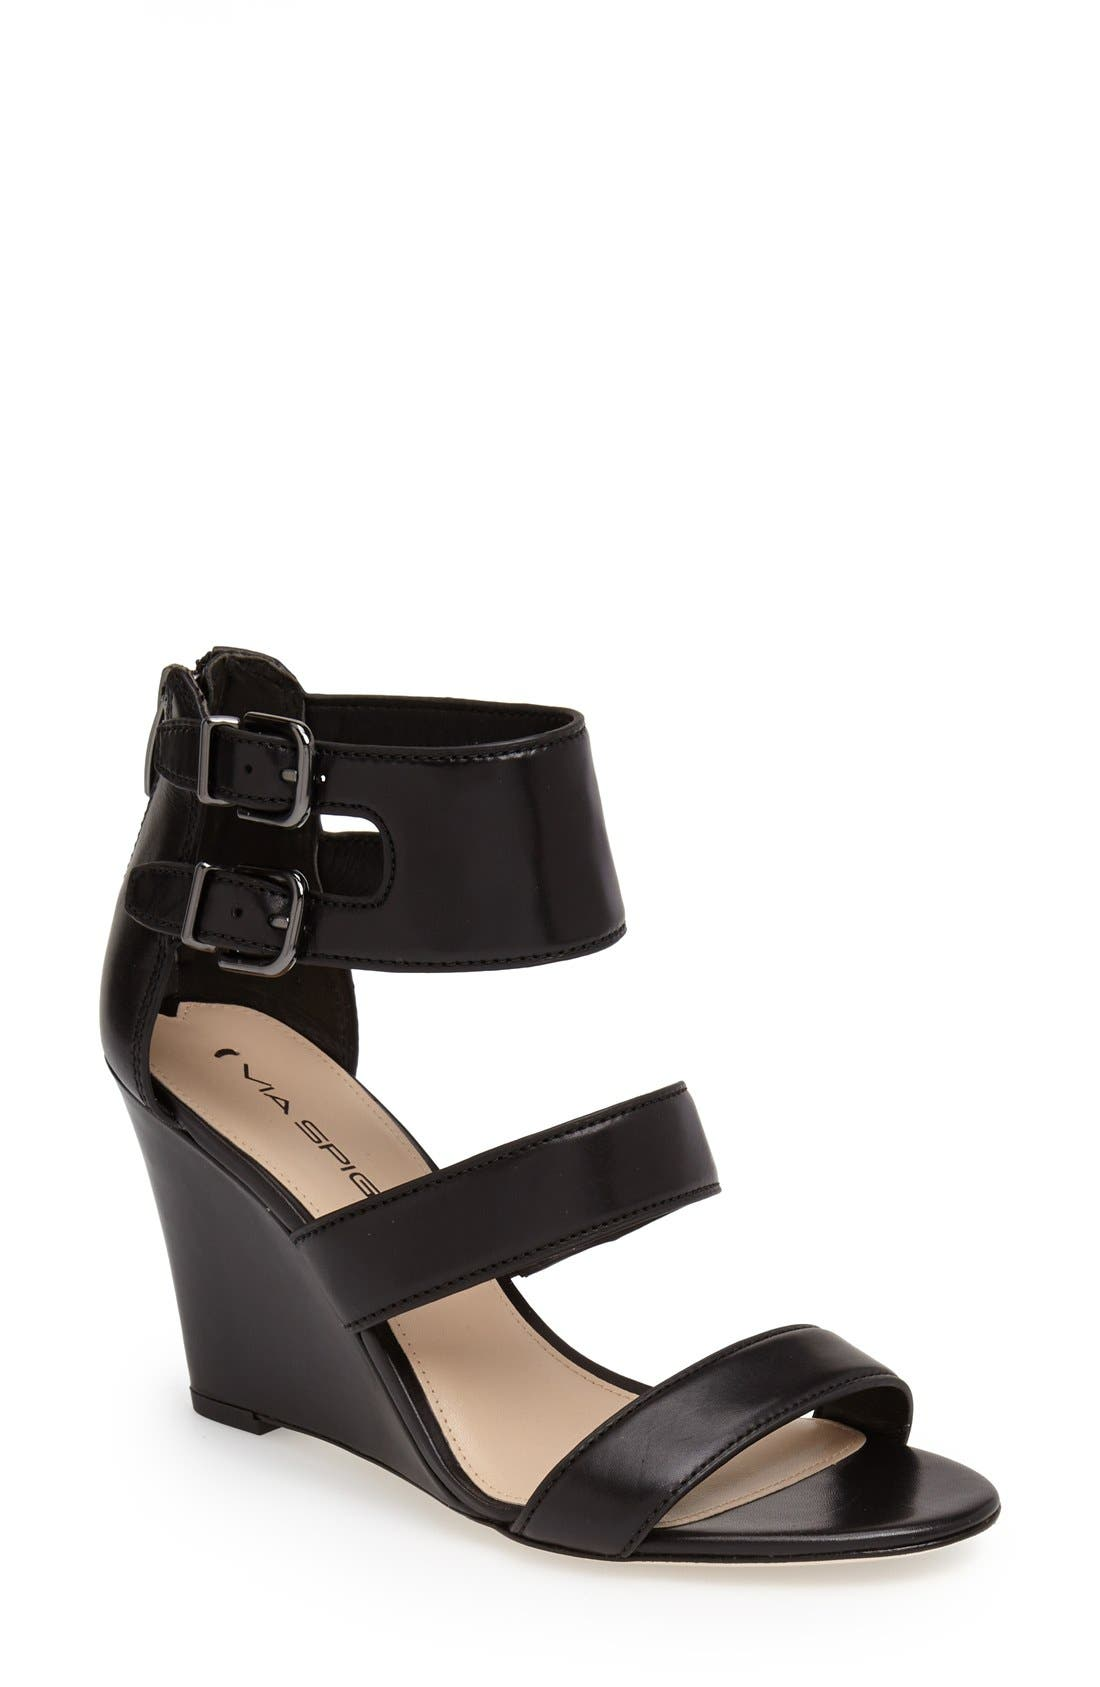 Alternate Image 1 Selected - Via Spiga 'Fernanda' Wedge Leather Sandal (Women)